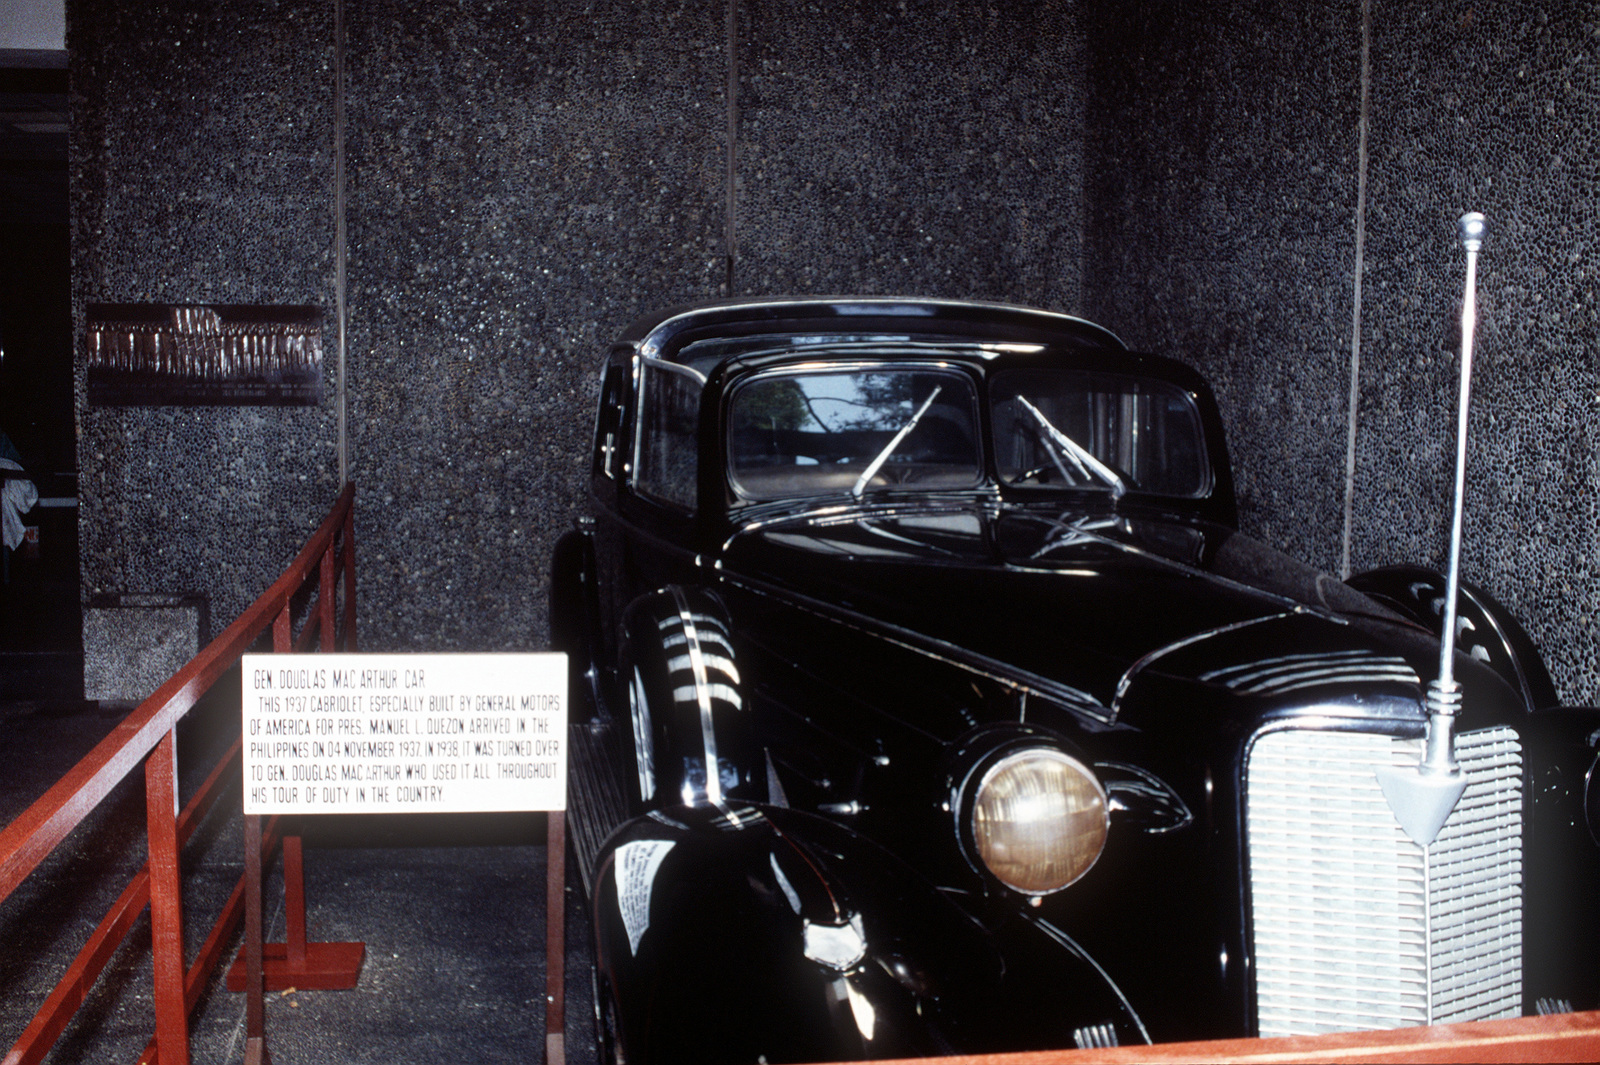 Douglas MacArthur throughout his tour in the Philippines is on display at the Corregidor Museum. The 1937 Cabriolet was especially built by General Motors ...